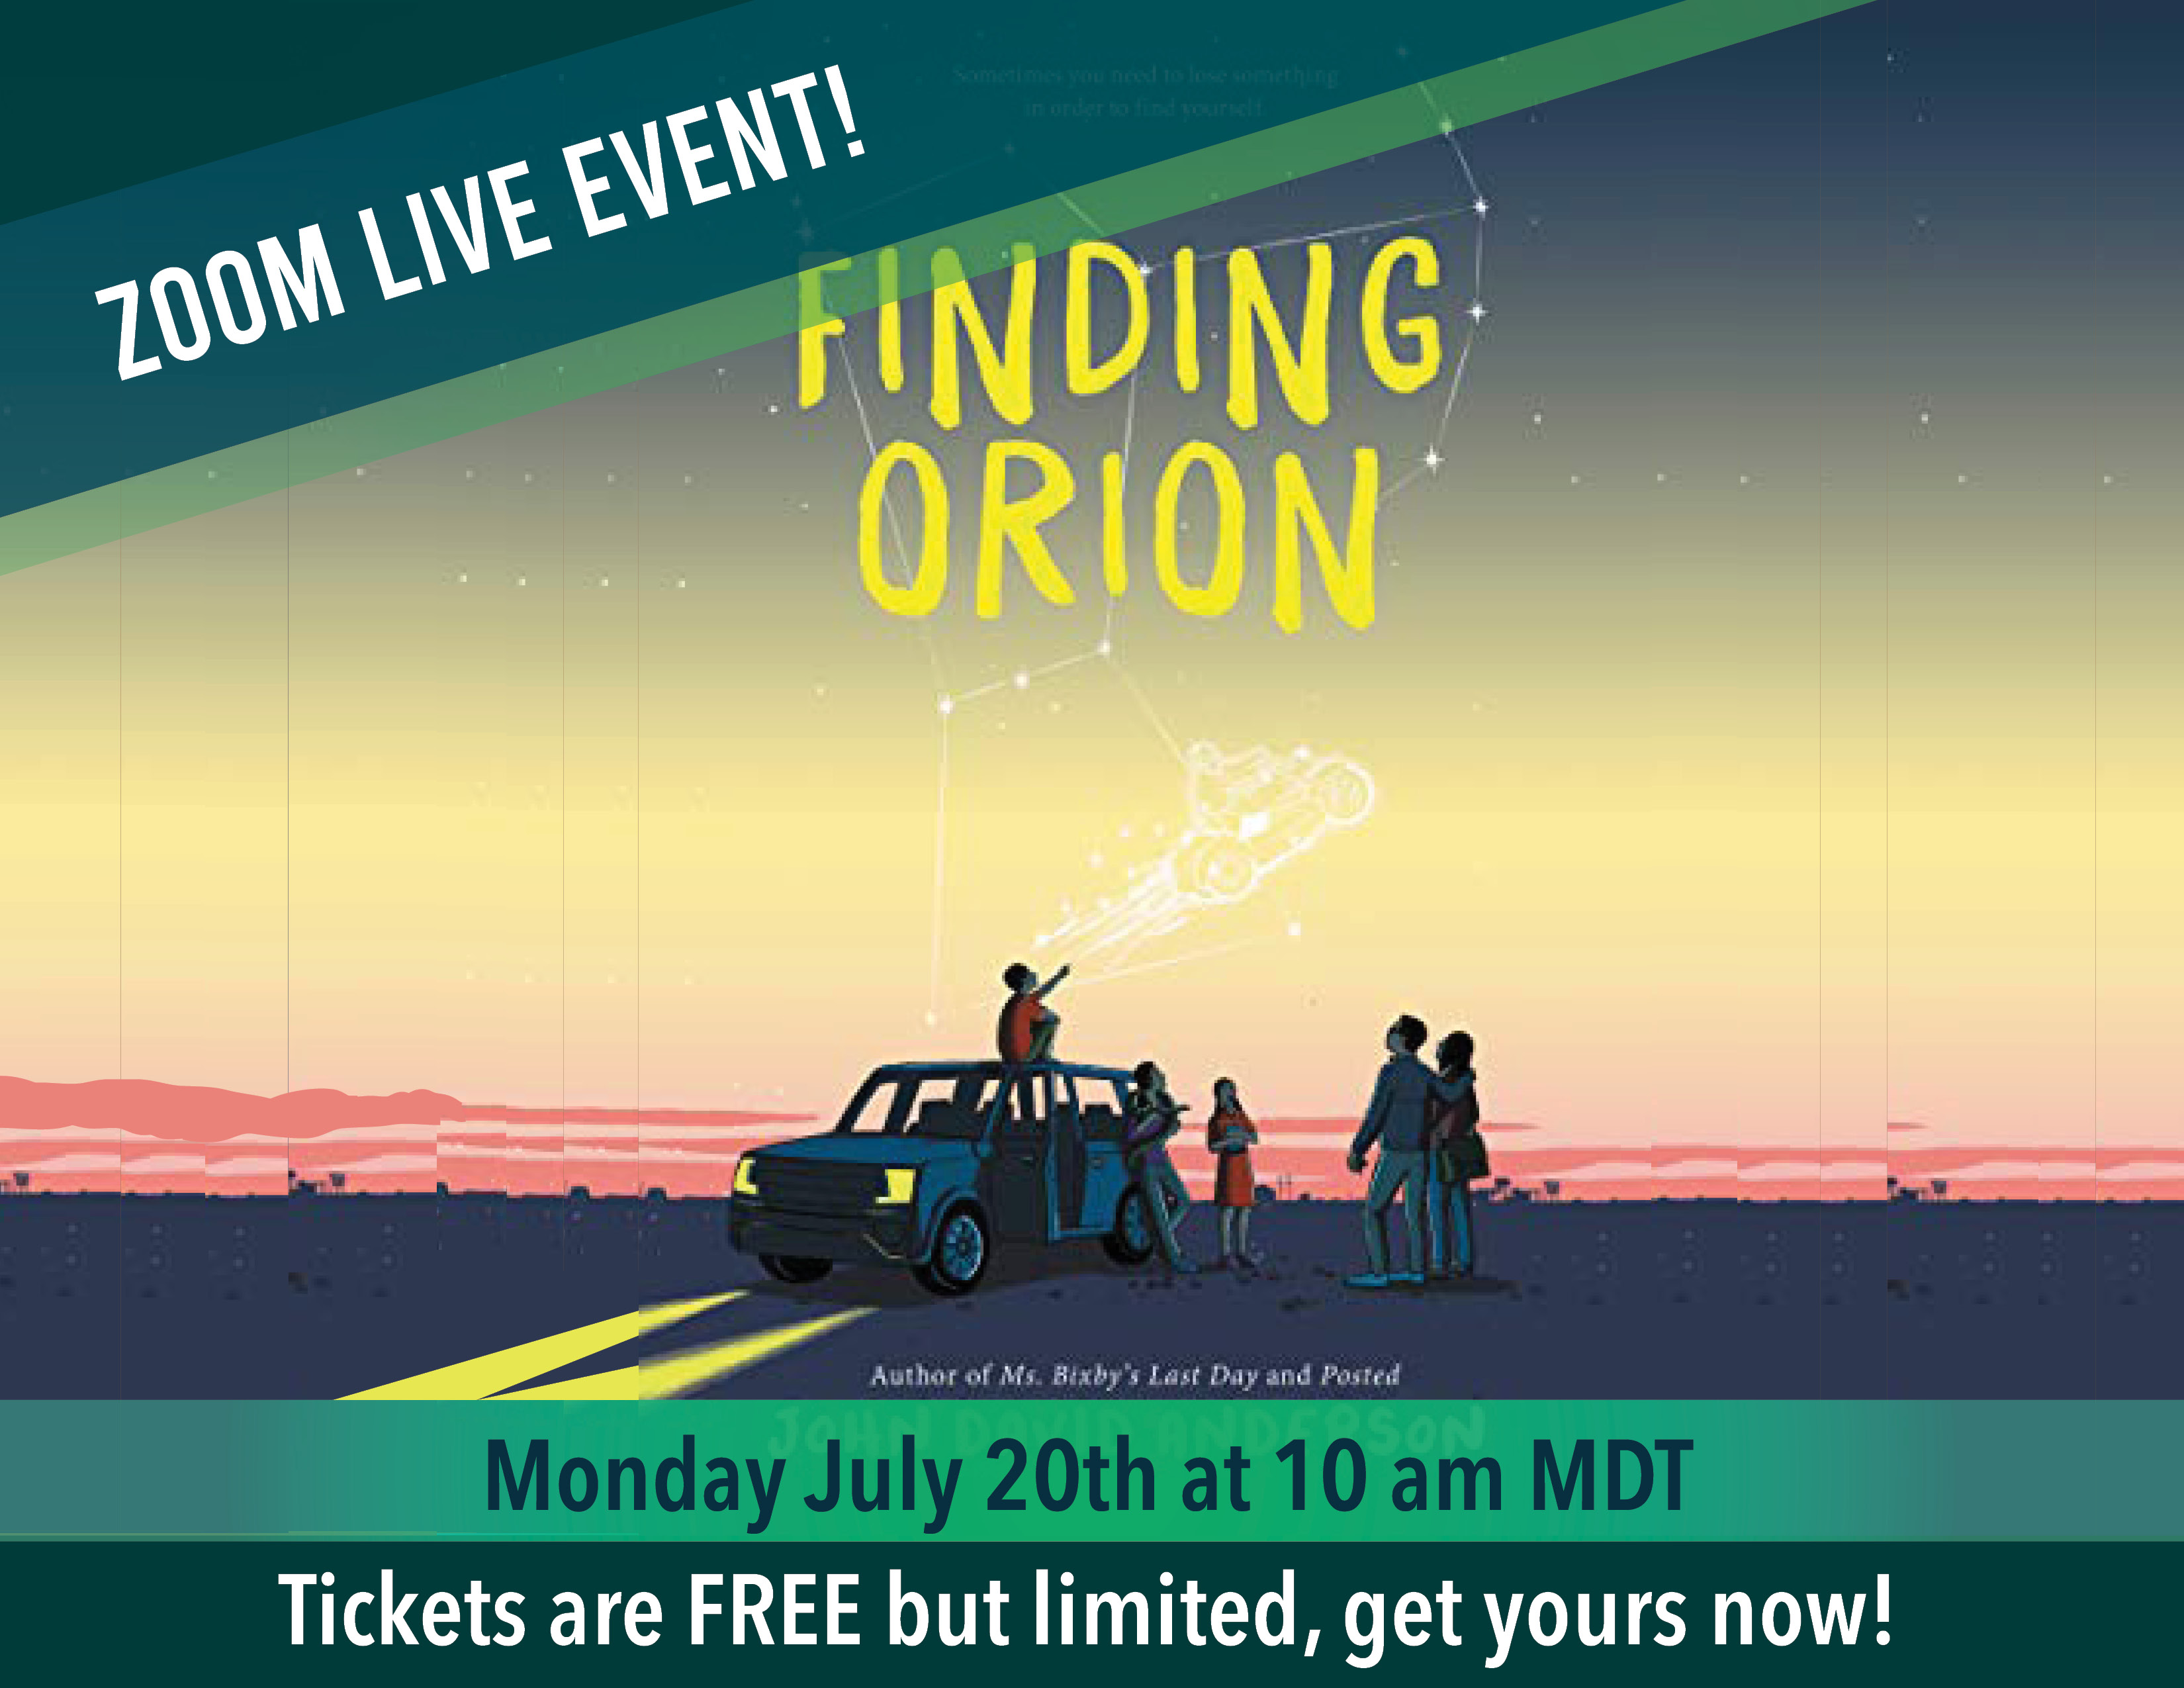 July Kids Book Club - Finding Orion - Zoom